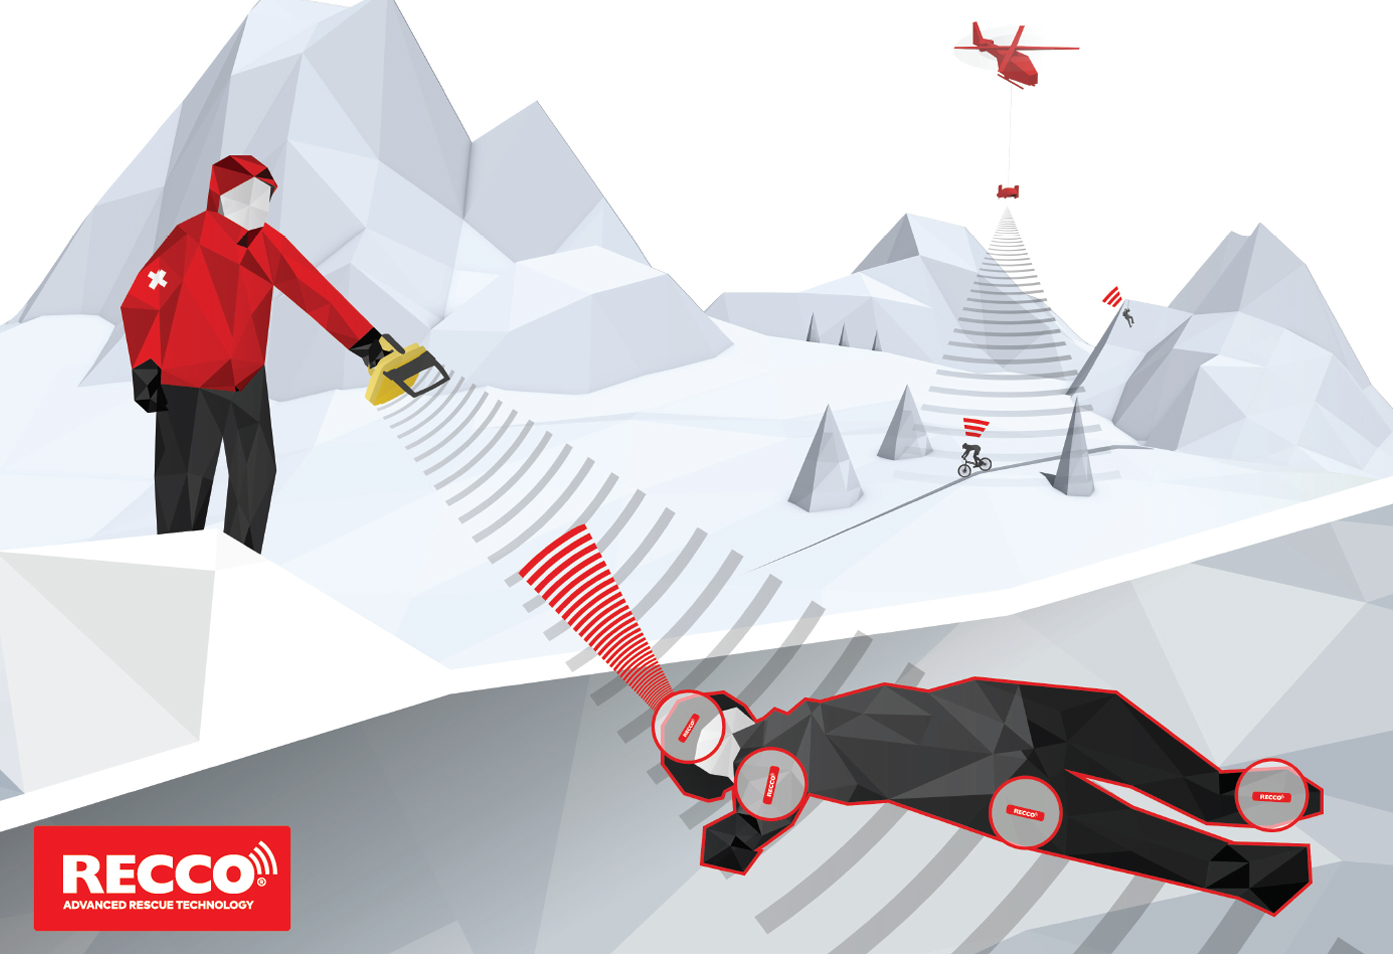 How does the RECCO® Avalanche Rescue Technology work?